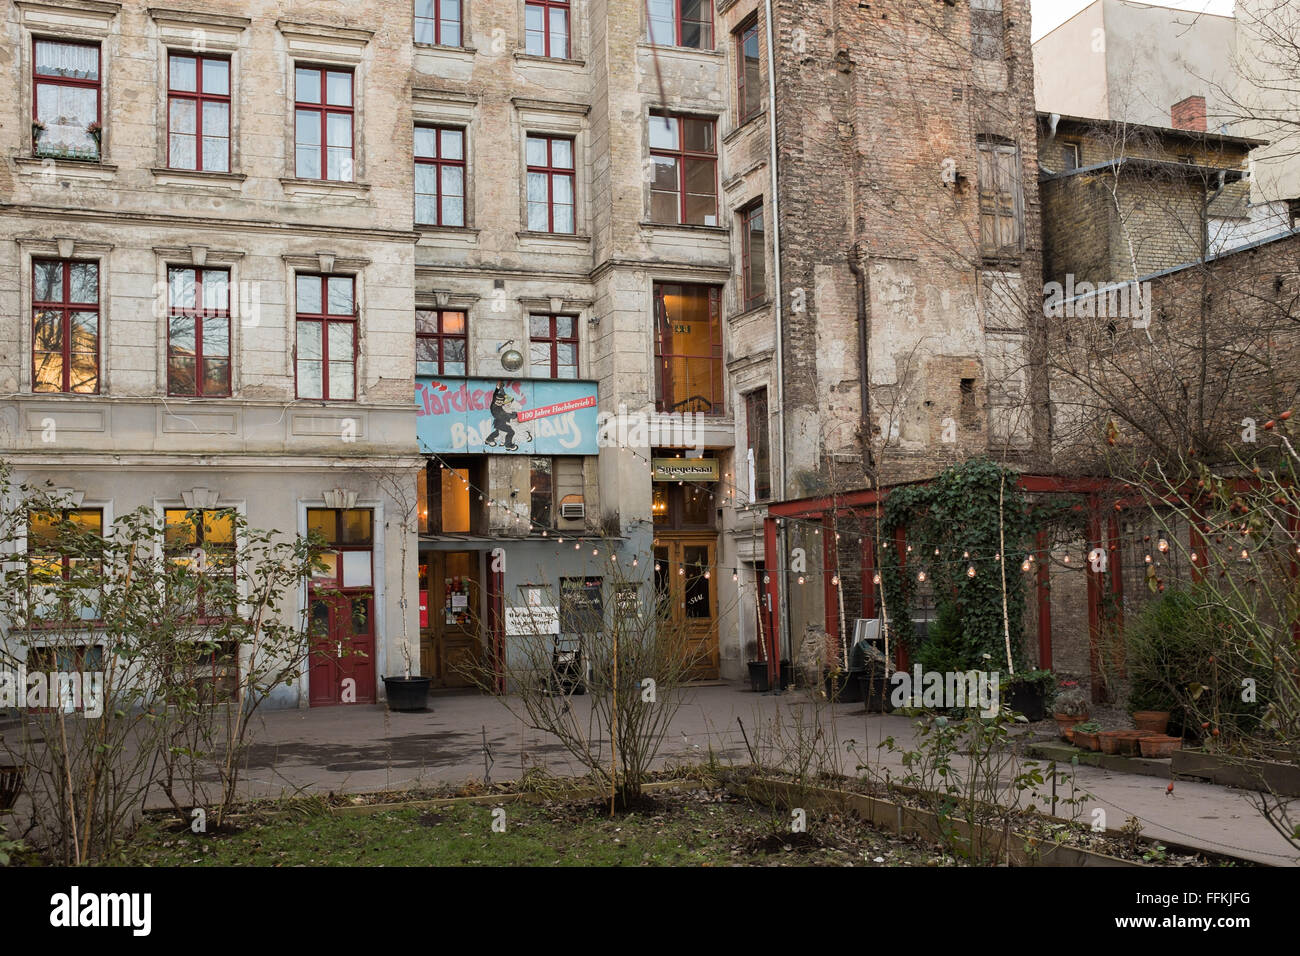 berlin 28 january the clarchens ballhaus auguststrasse berlin stock photo royalty free image. Black Bedroom Furniture Sets. Home Design Ideas